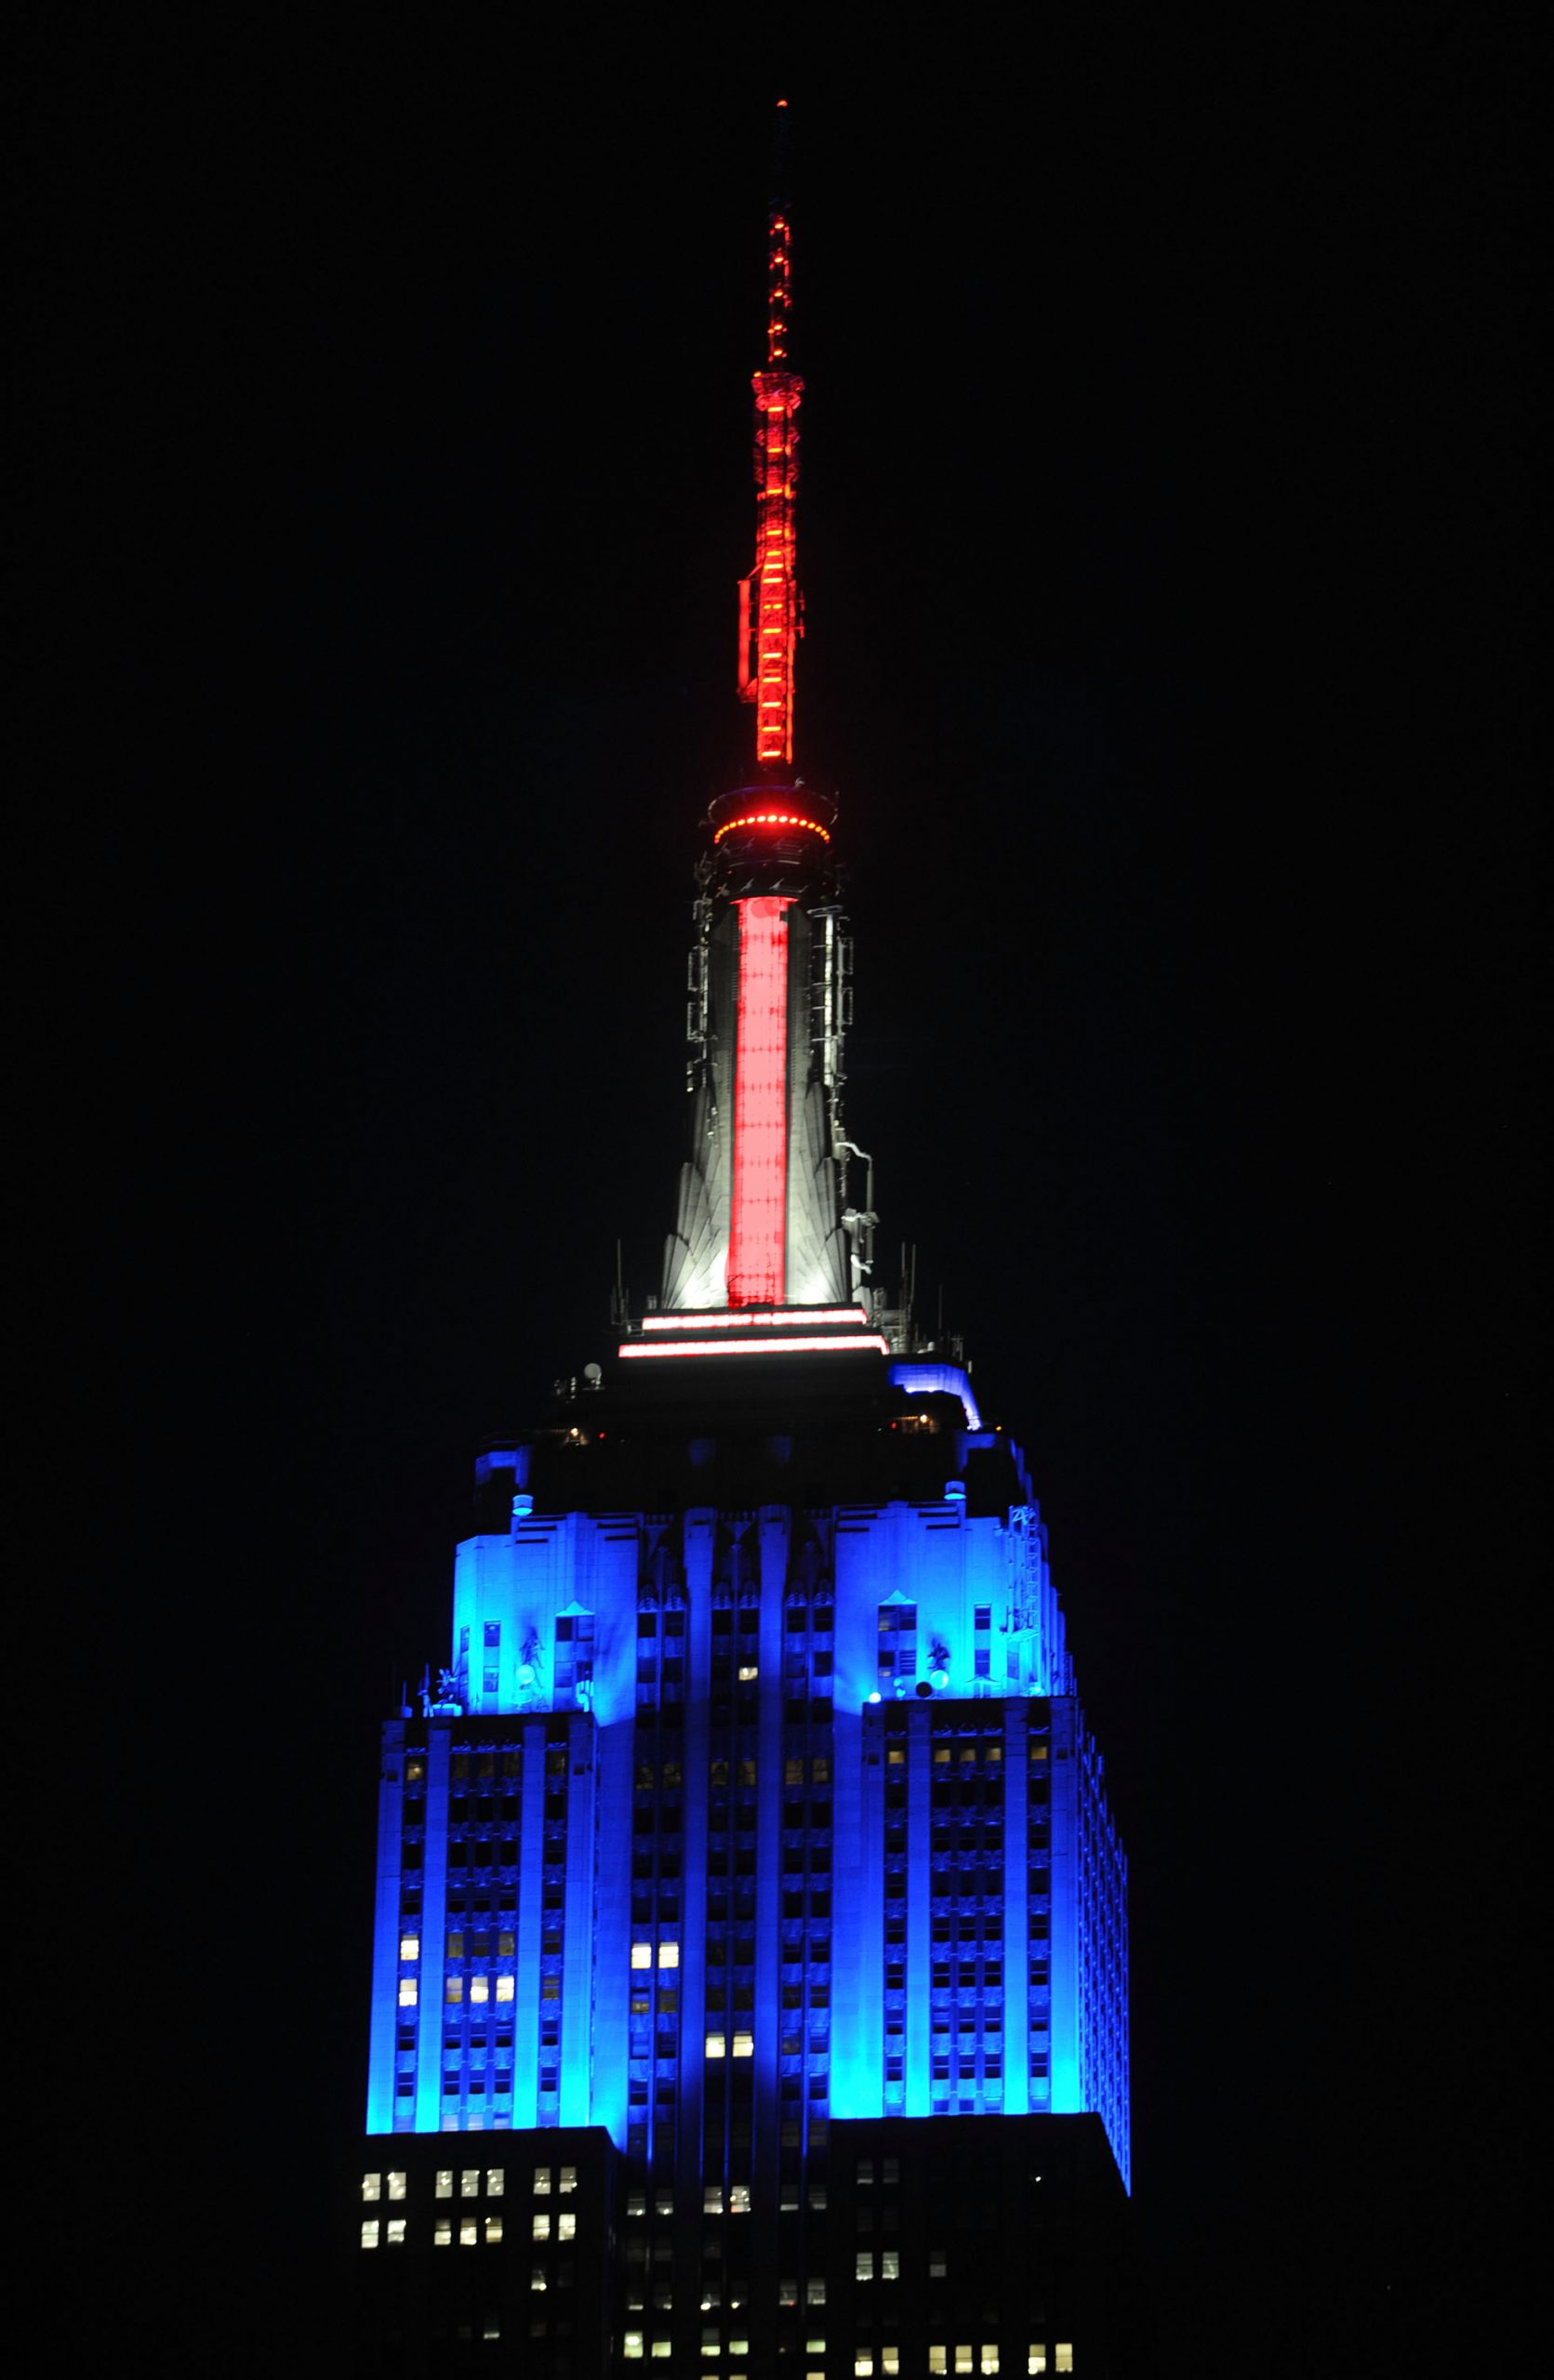 Tower Lighting 2018 06 11 00:00:00 | Empire State Building Within Empire State Building Lights Schedule